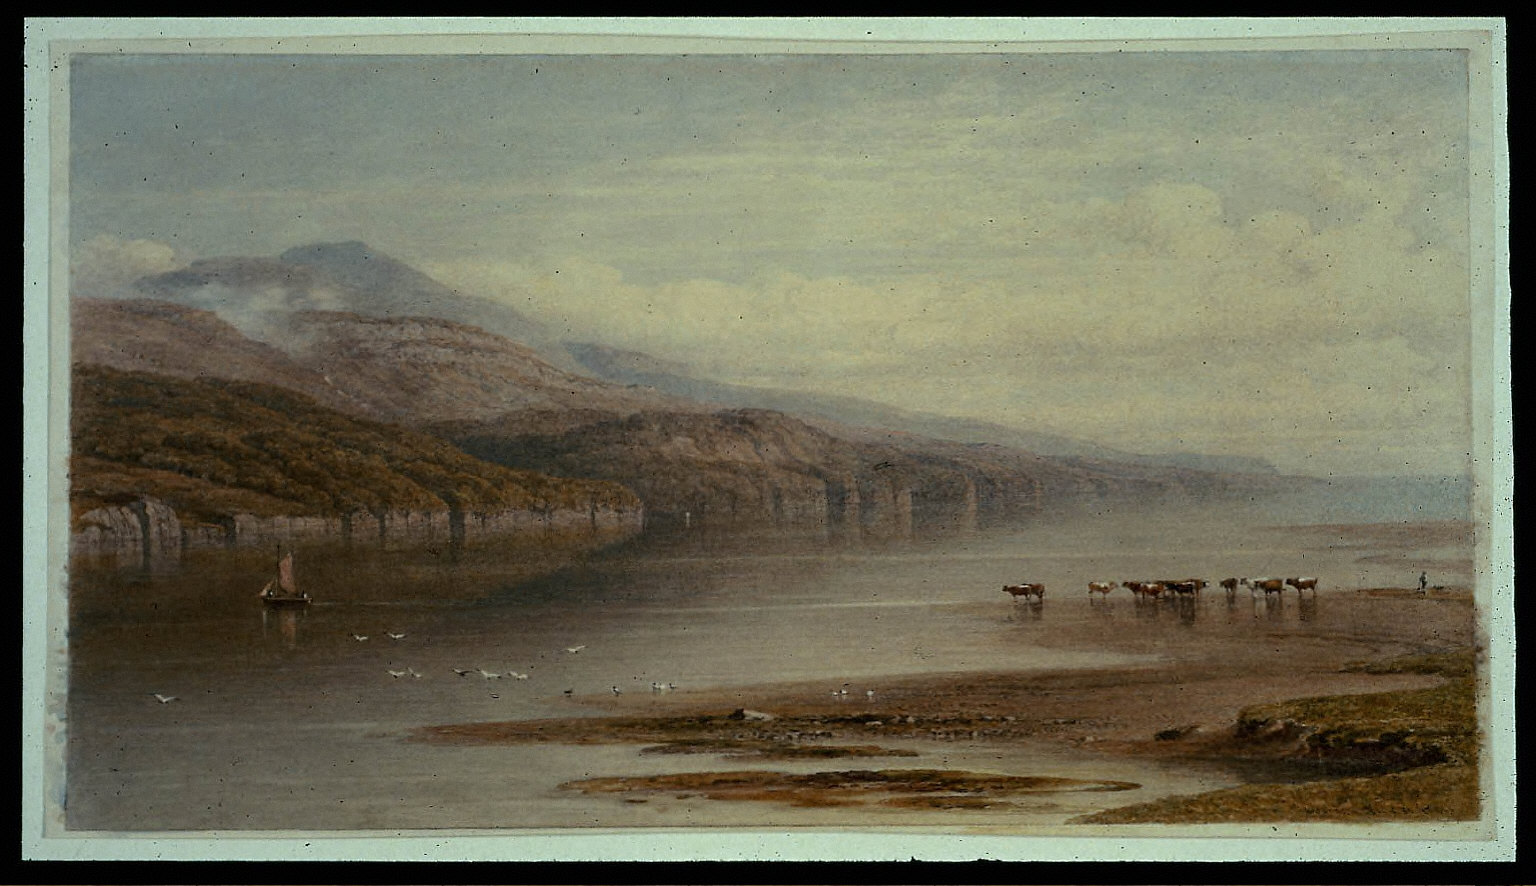 Landscape on the River Mordach, looking towards Barmouth